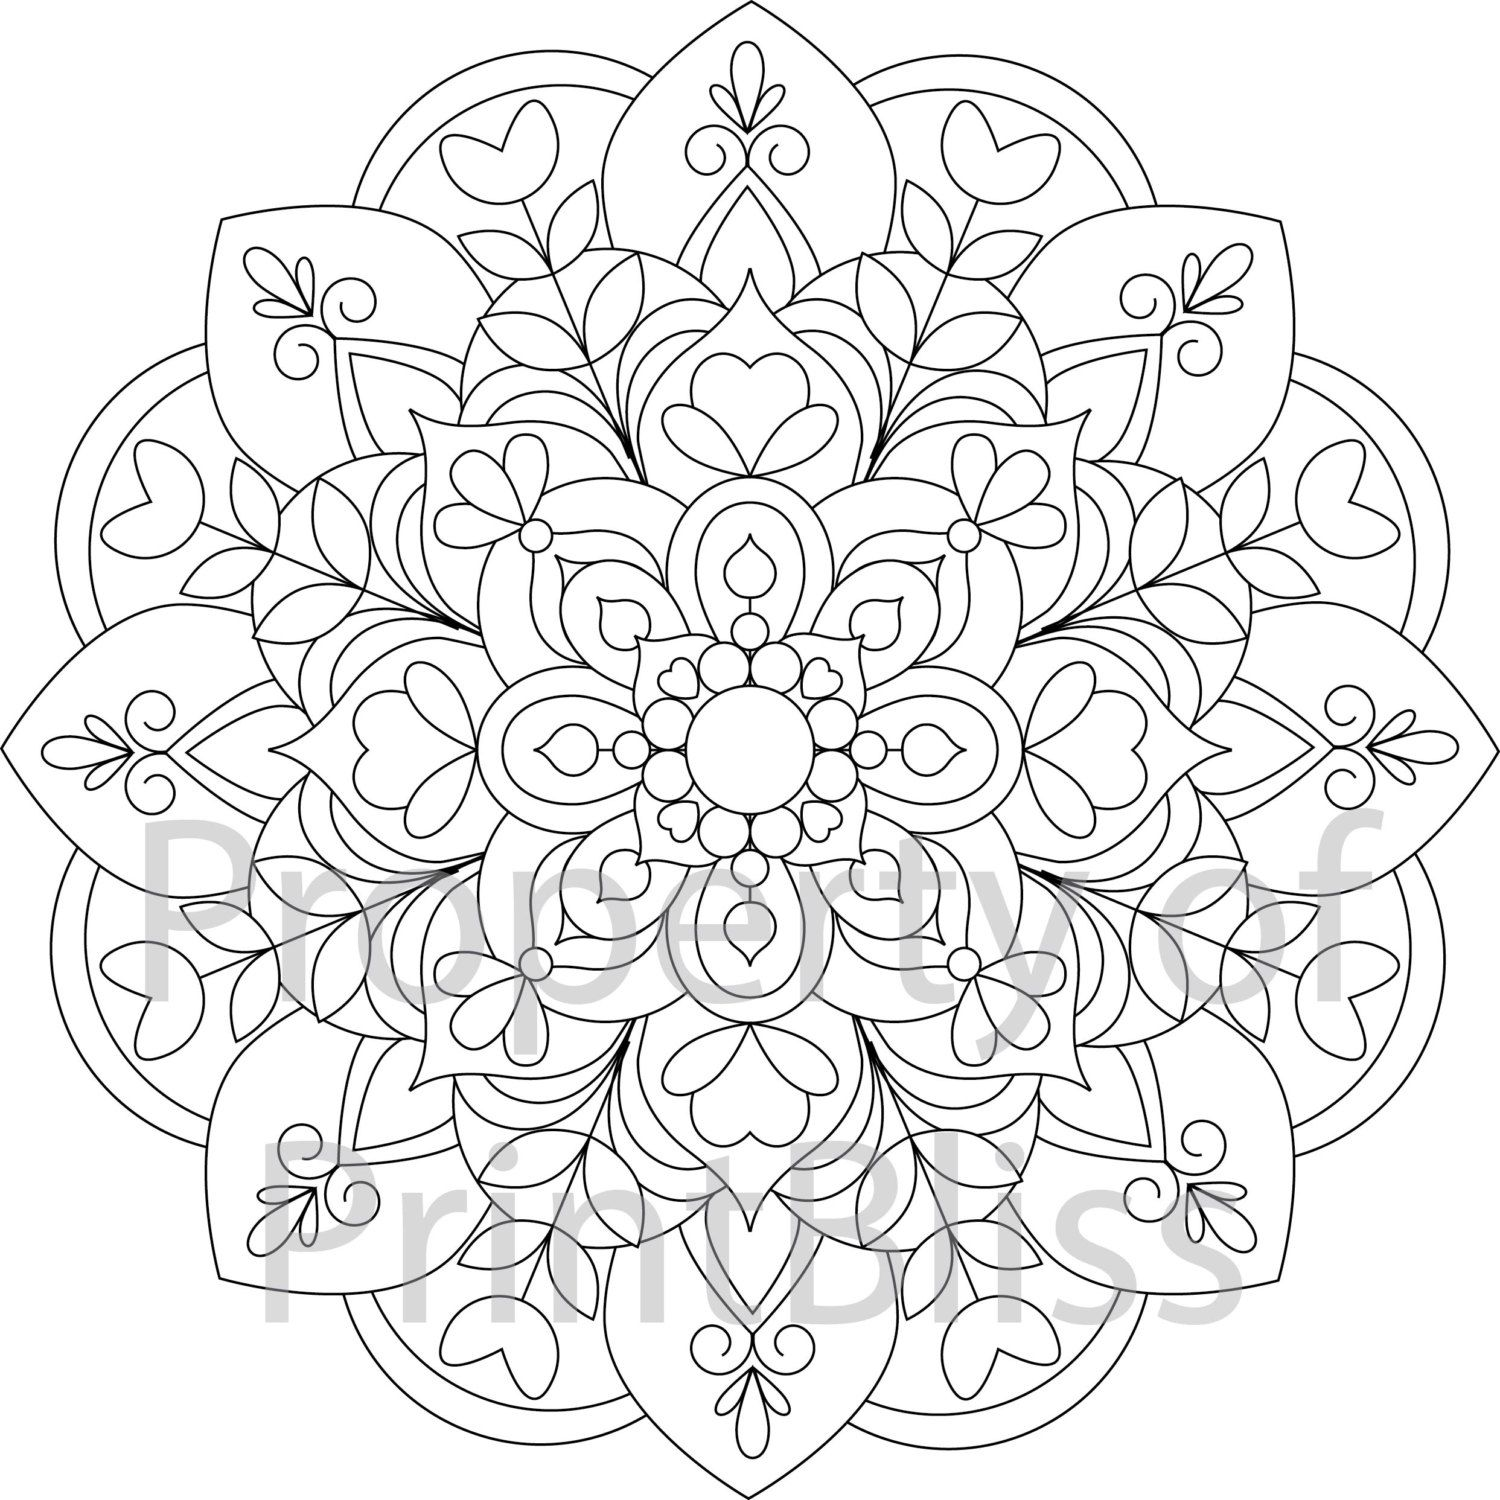 19 Flower Mandala Printable Coloring Page Etsy Mandala Coloring Books Mandala Printable Mandala Coloring